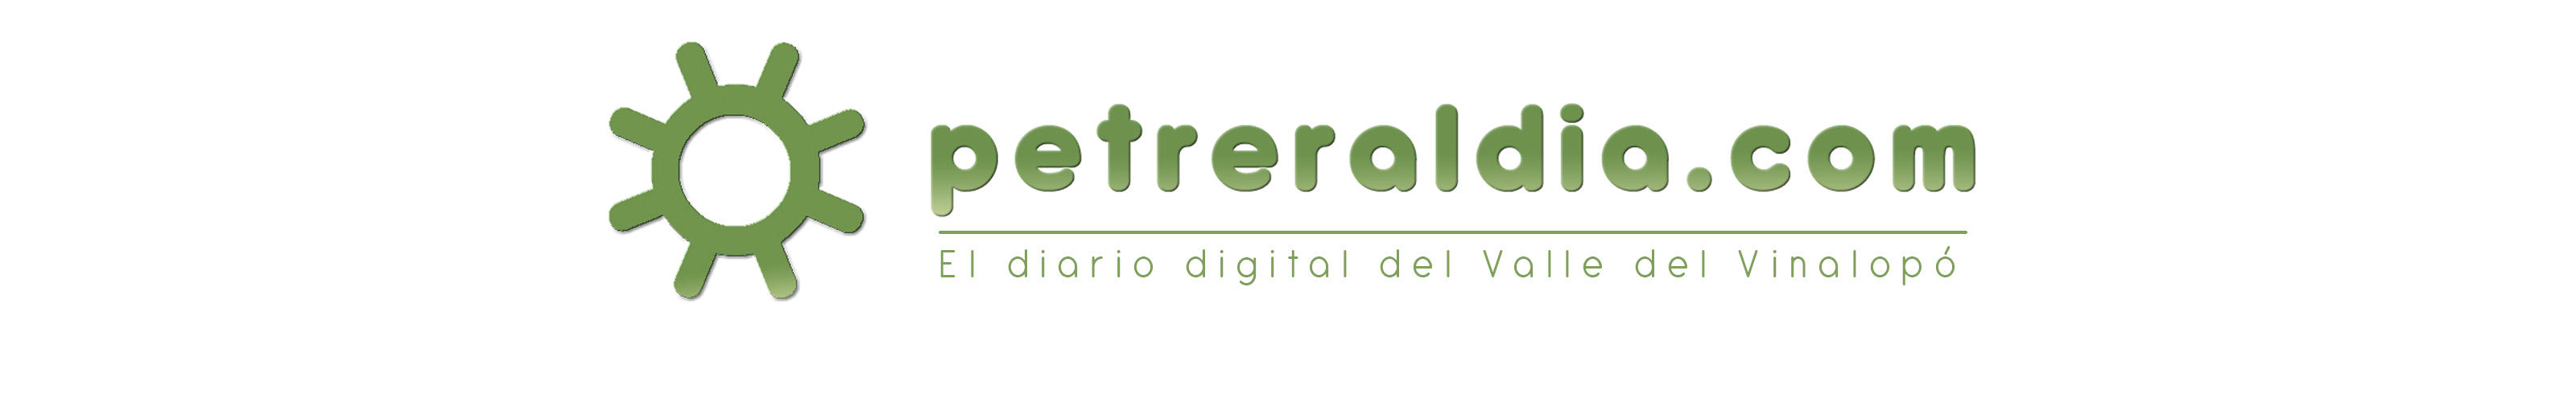 Petreraldia.com – Noticias de actualidad de Petrer y su comarca